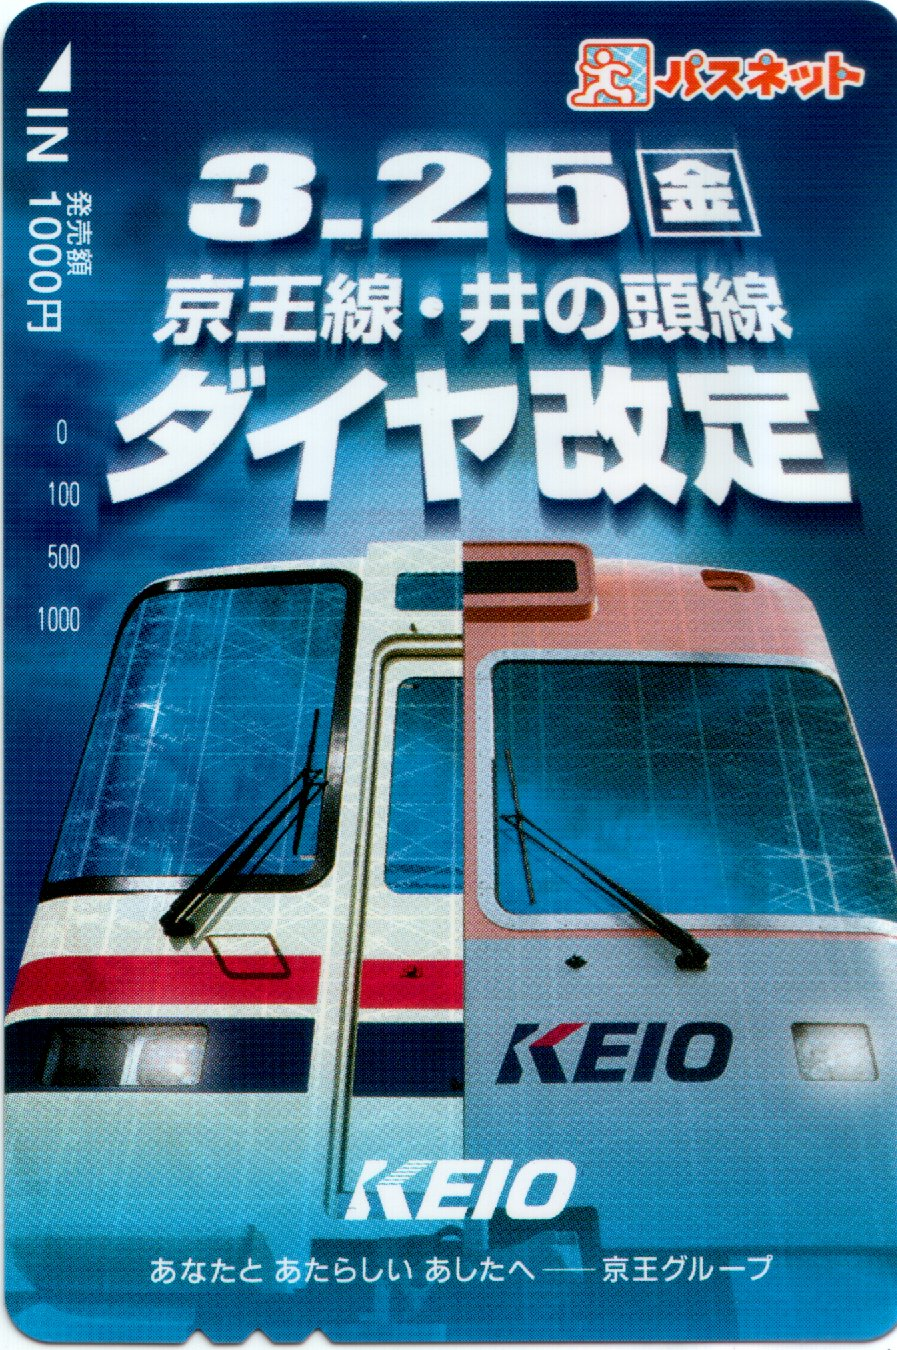 Mar. 25 2005 Train schedule change